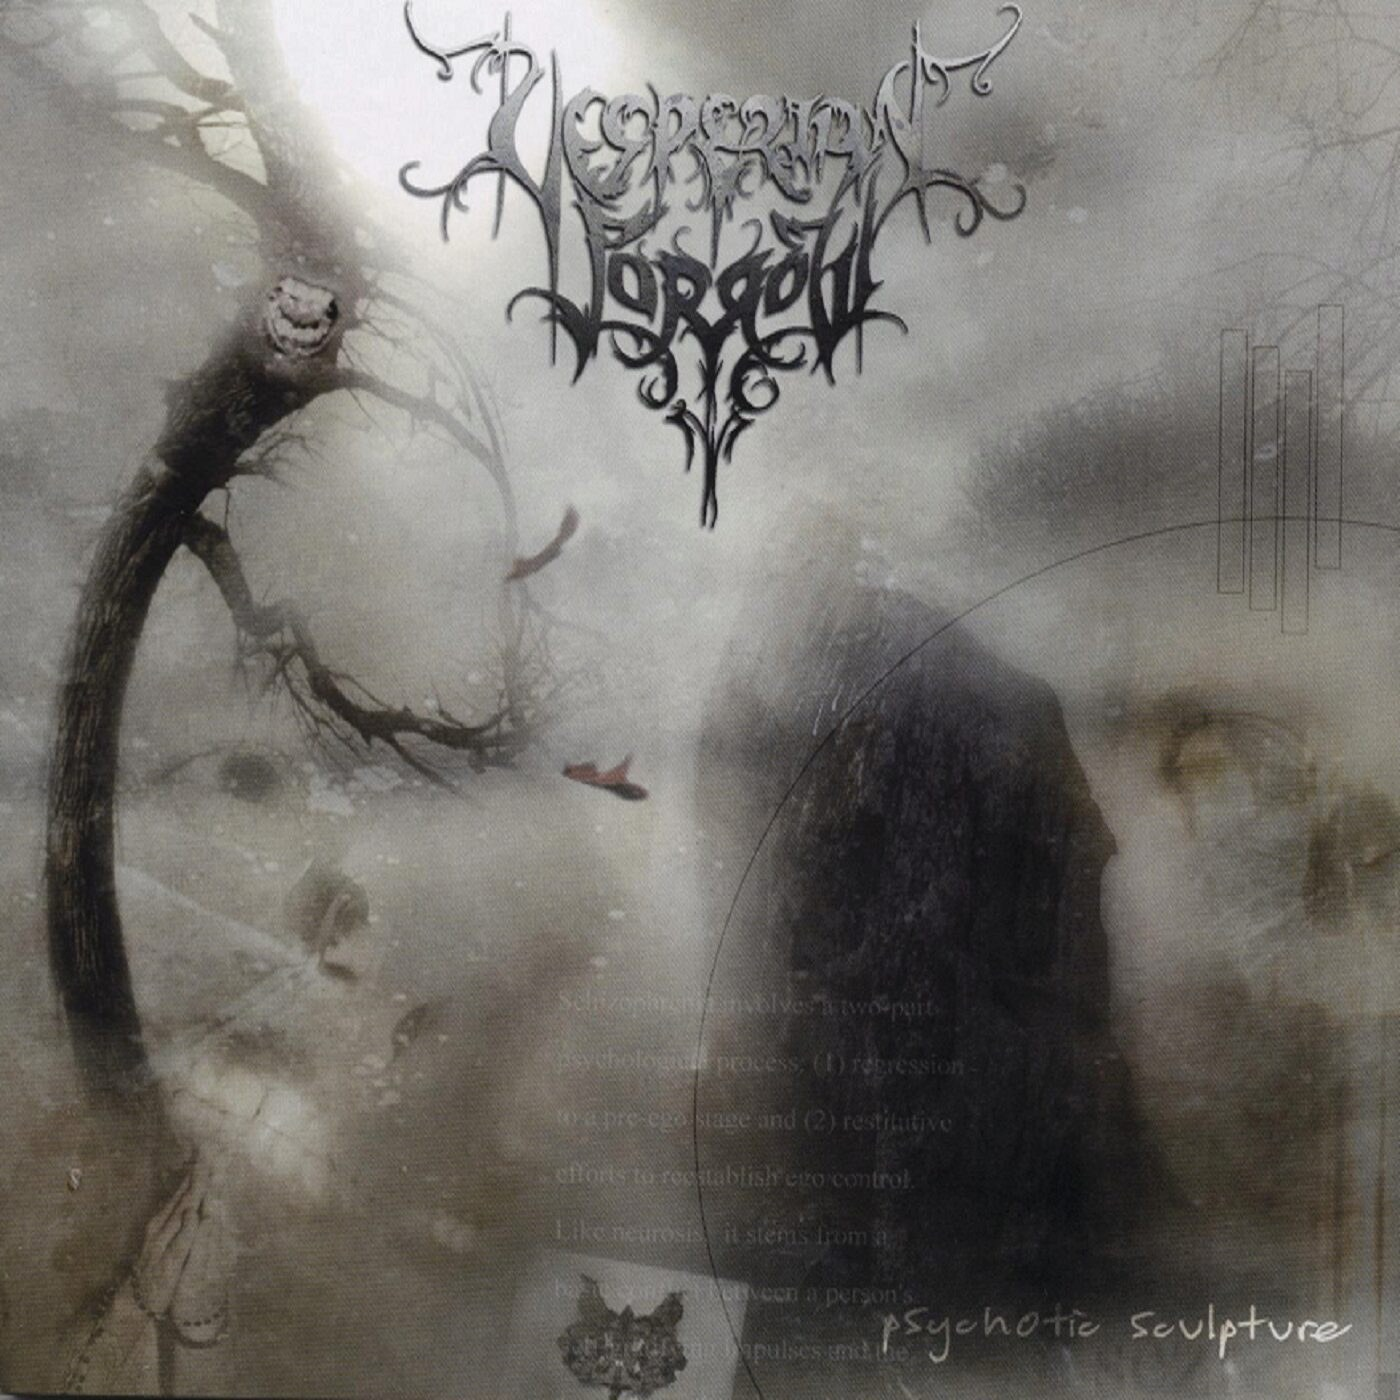 Review for Vesperian Sorrow - Psychotic Sculpture